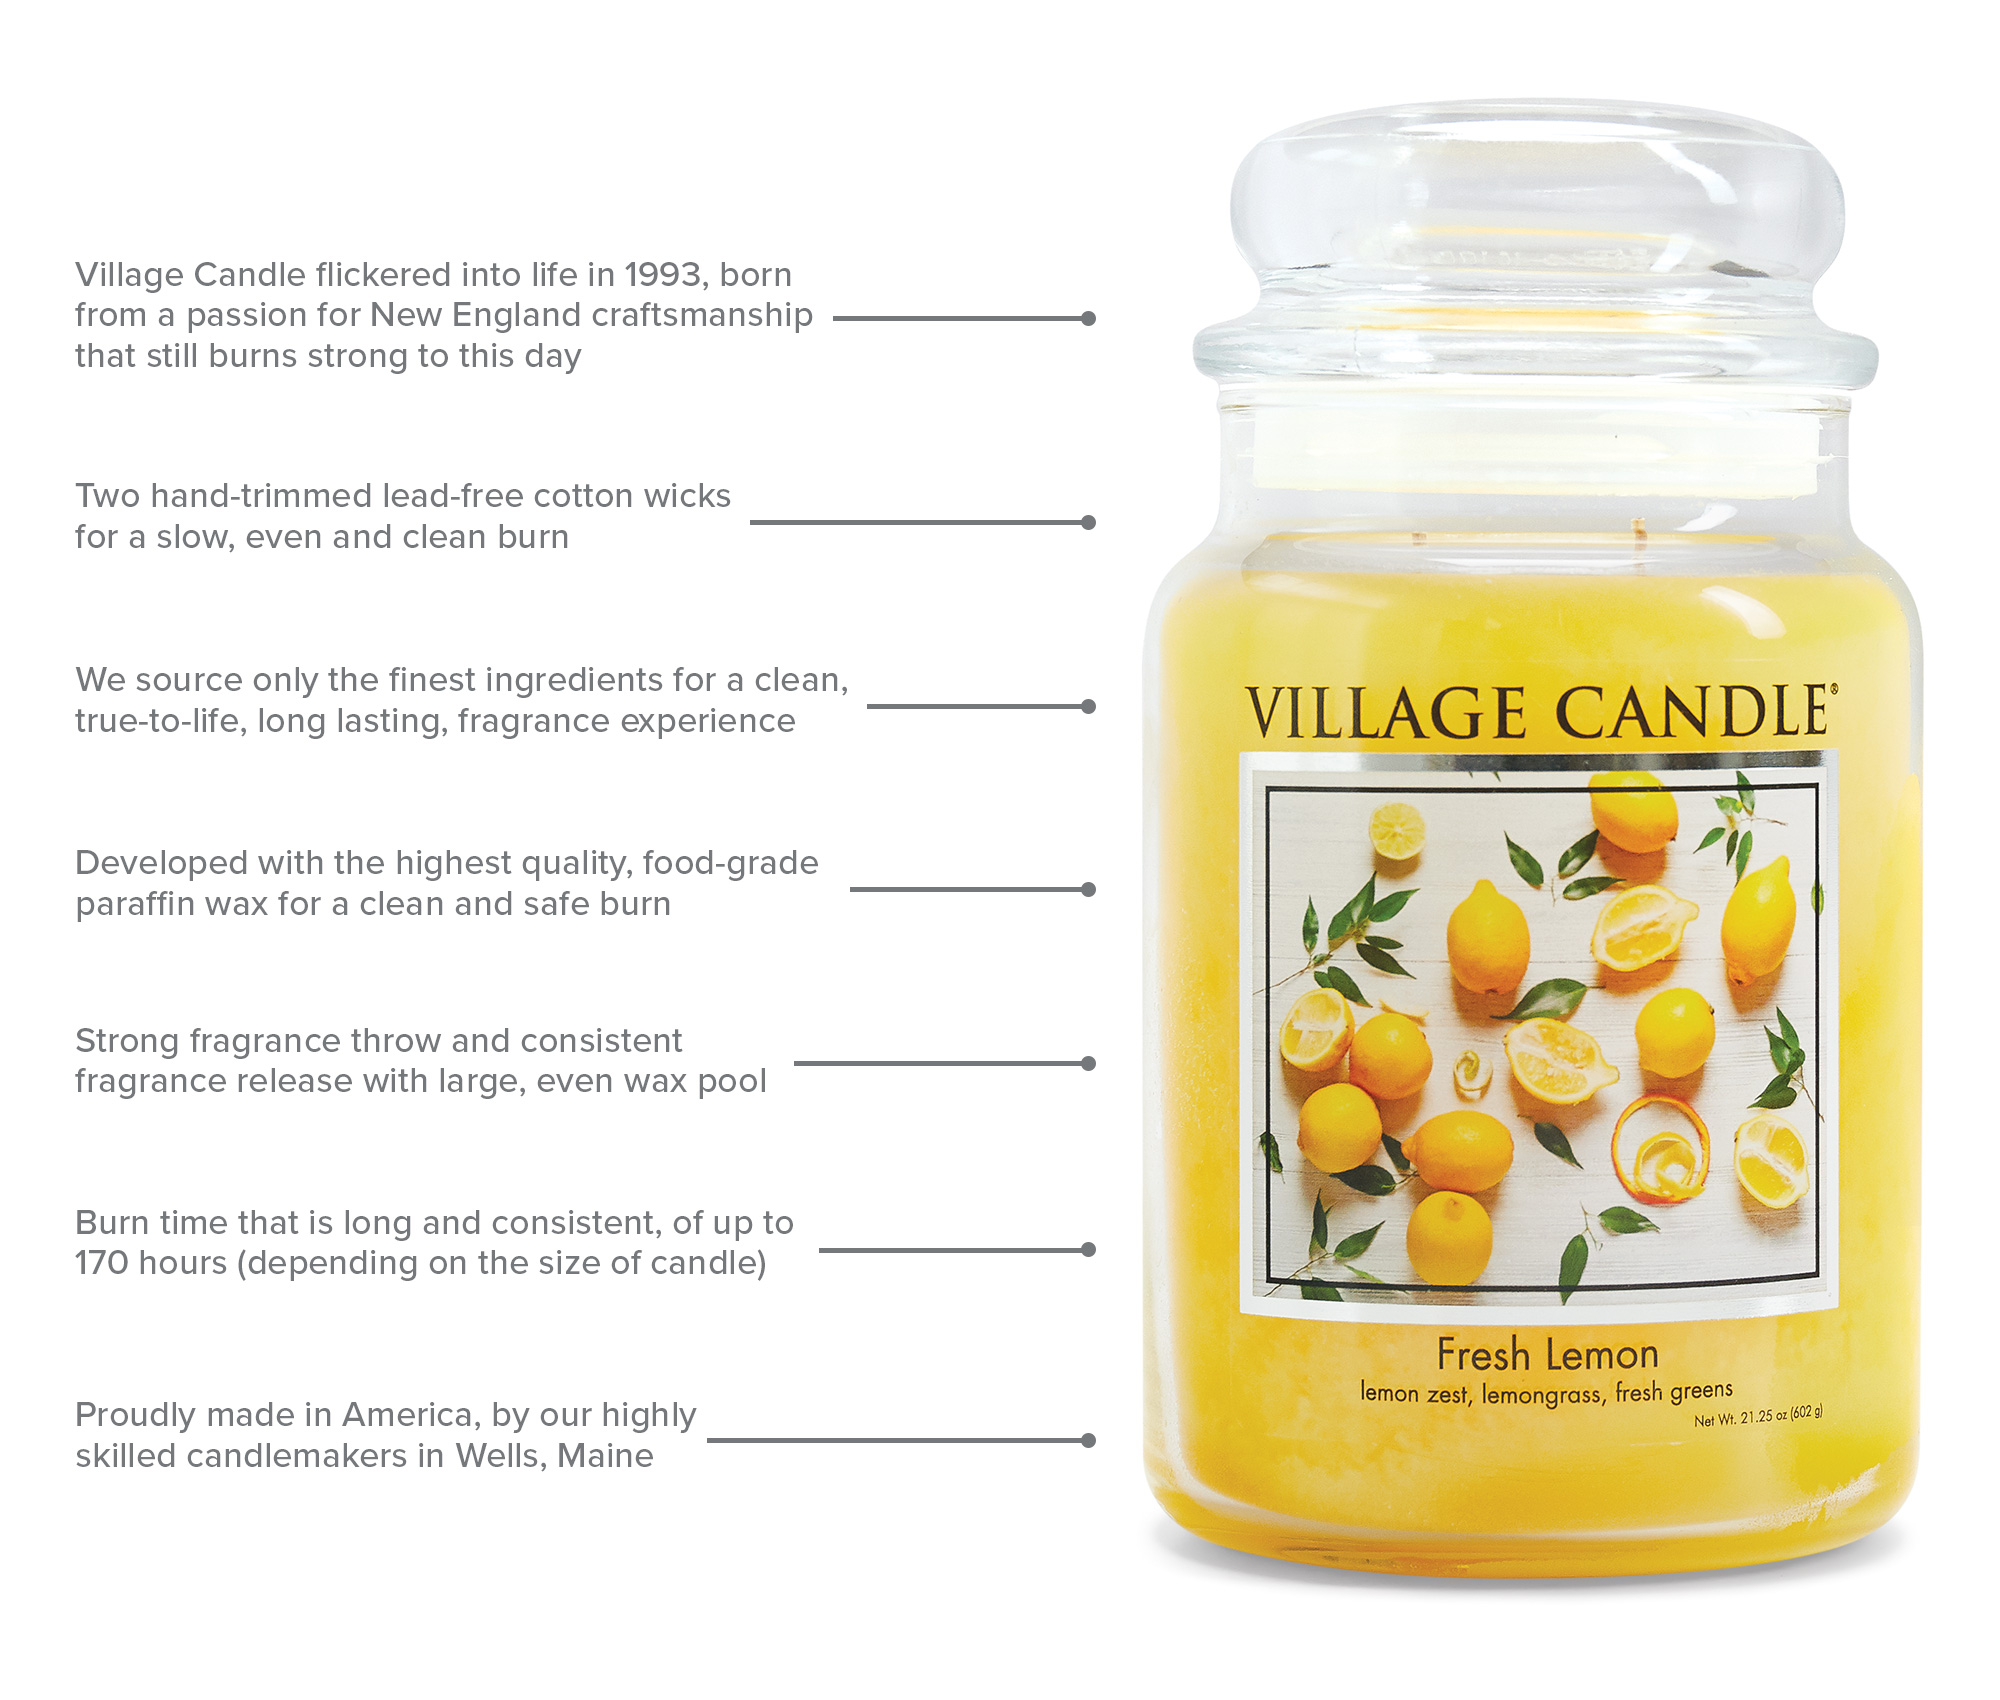 Village Candle Anatomy